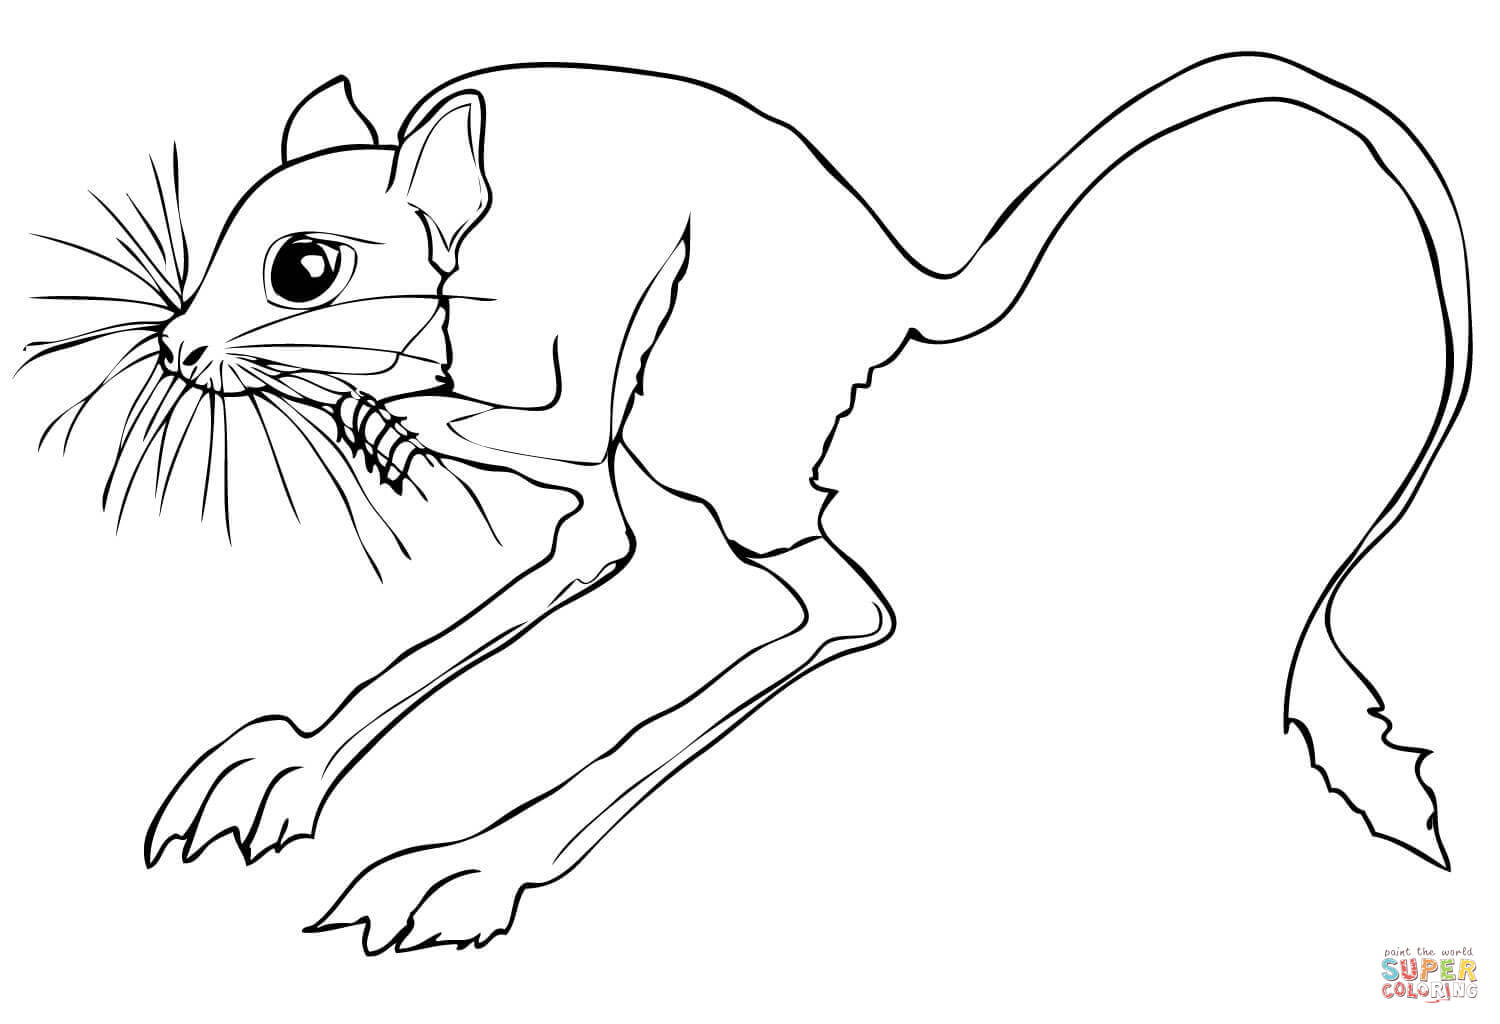 Rodent coloring #5, Download drawings